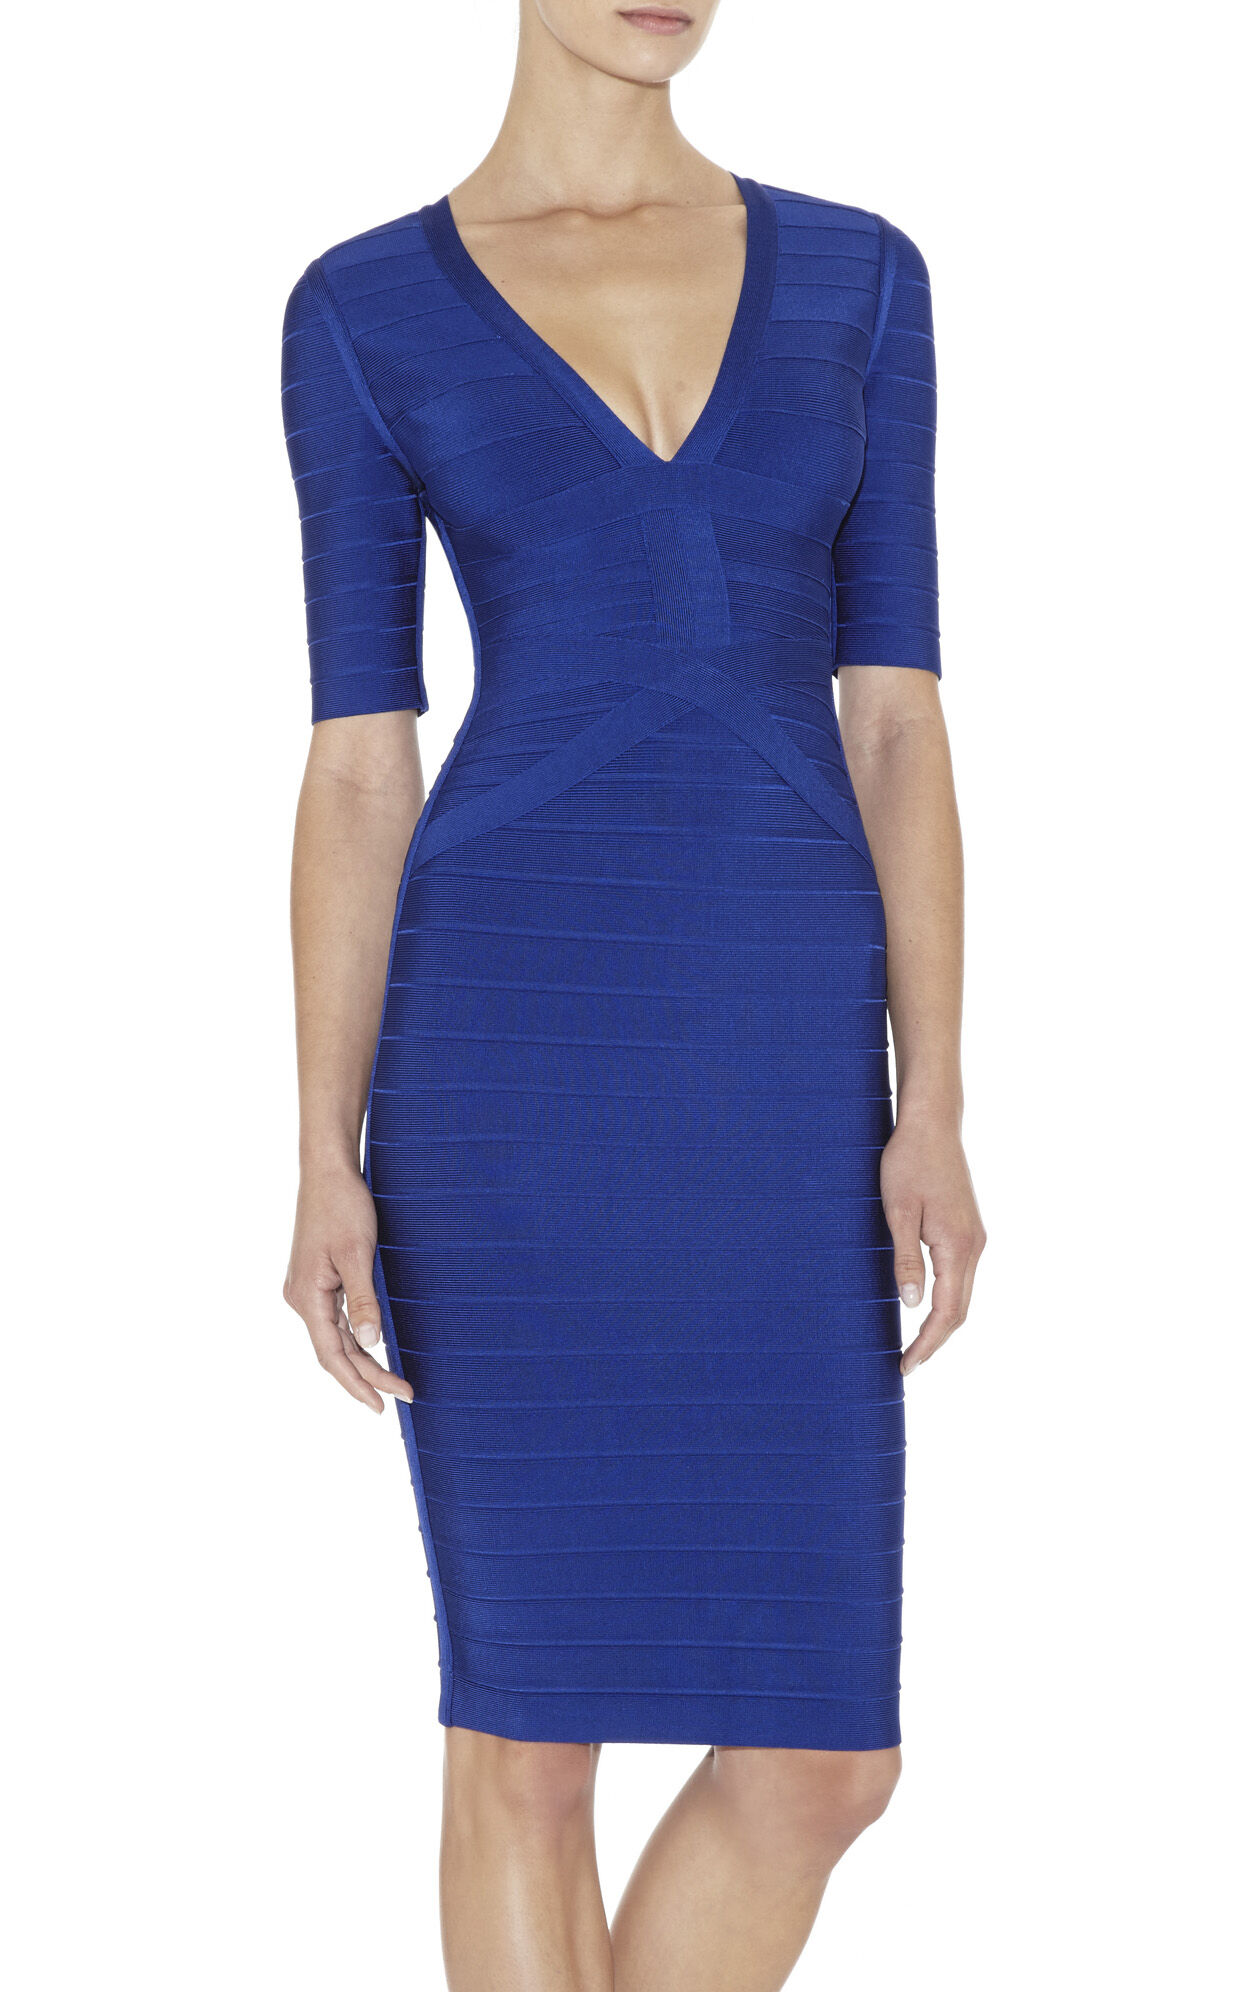 Cybil Novelty Essentials Dress